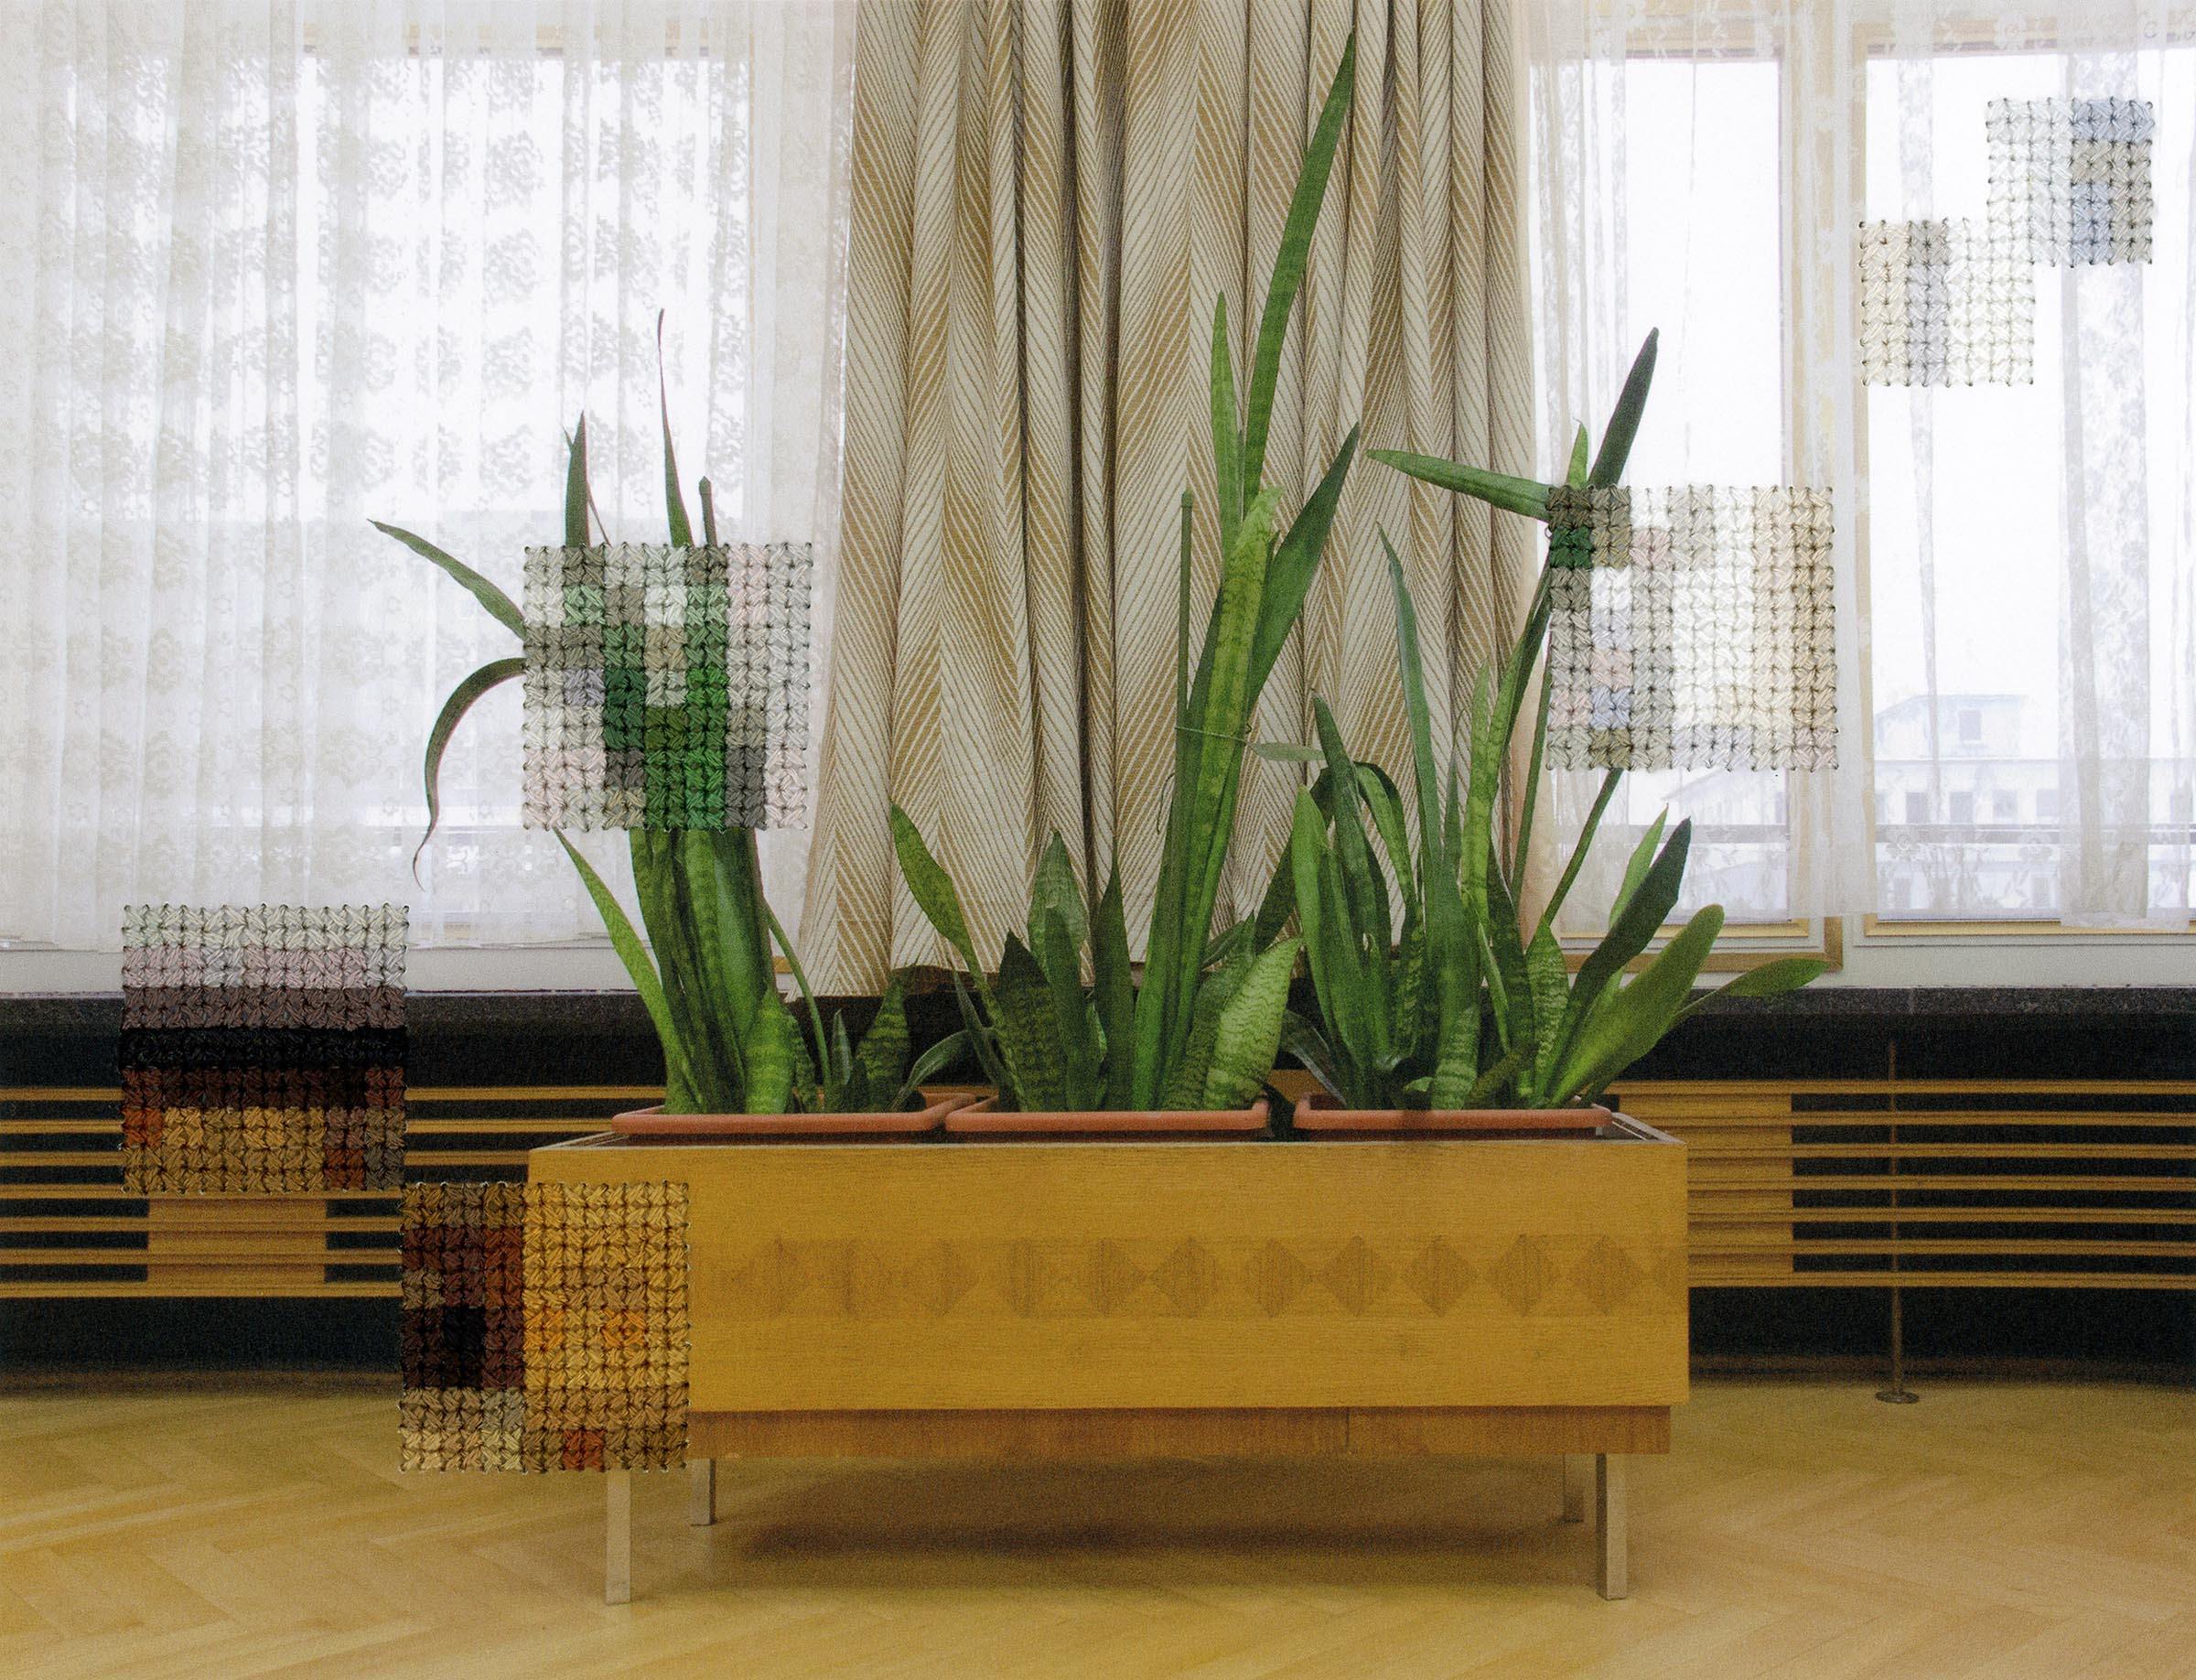 Diane Meyer , Plants, Former Offices of the State Secret Police, Hand Sewn Archival Ink Jet Print, 6x 7.5 inches, 2012